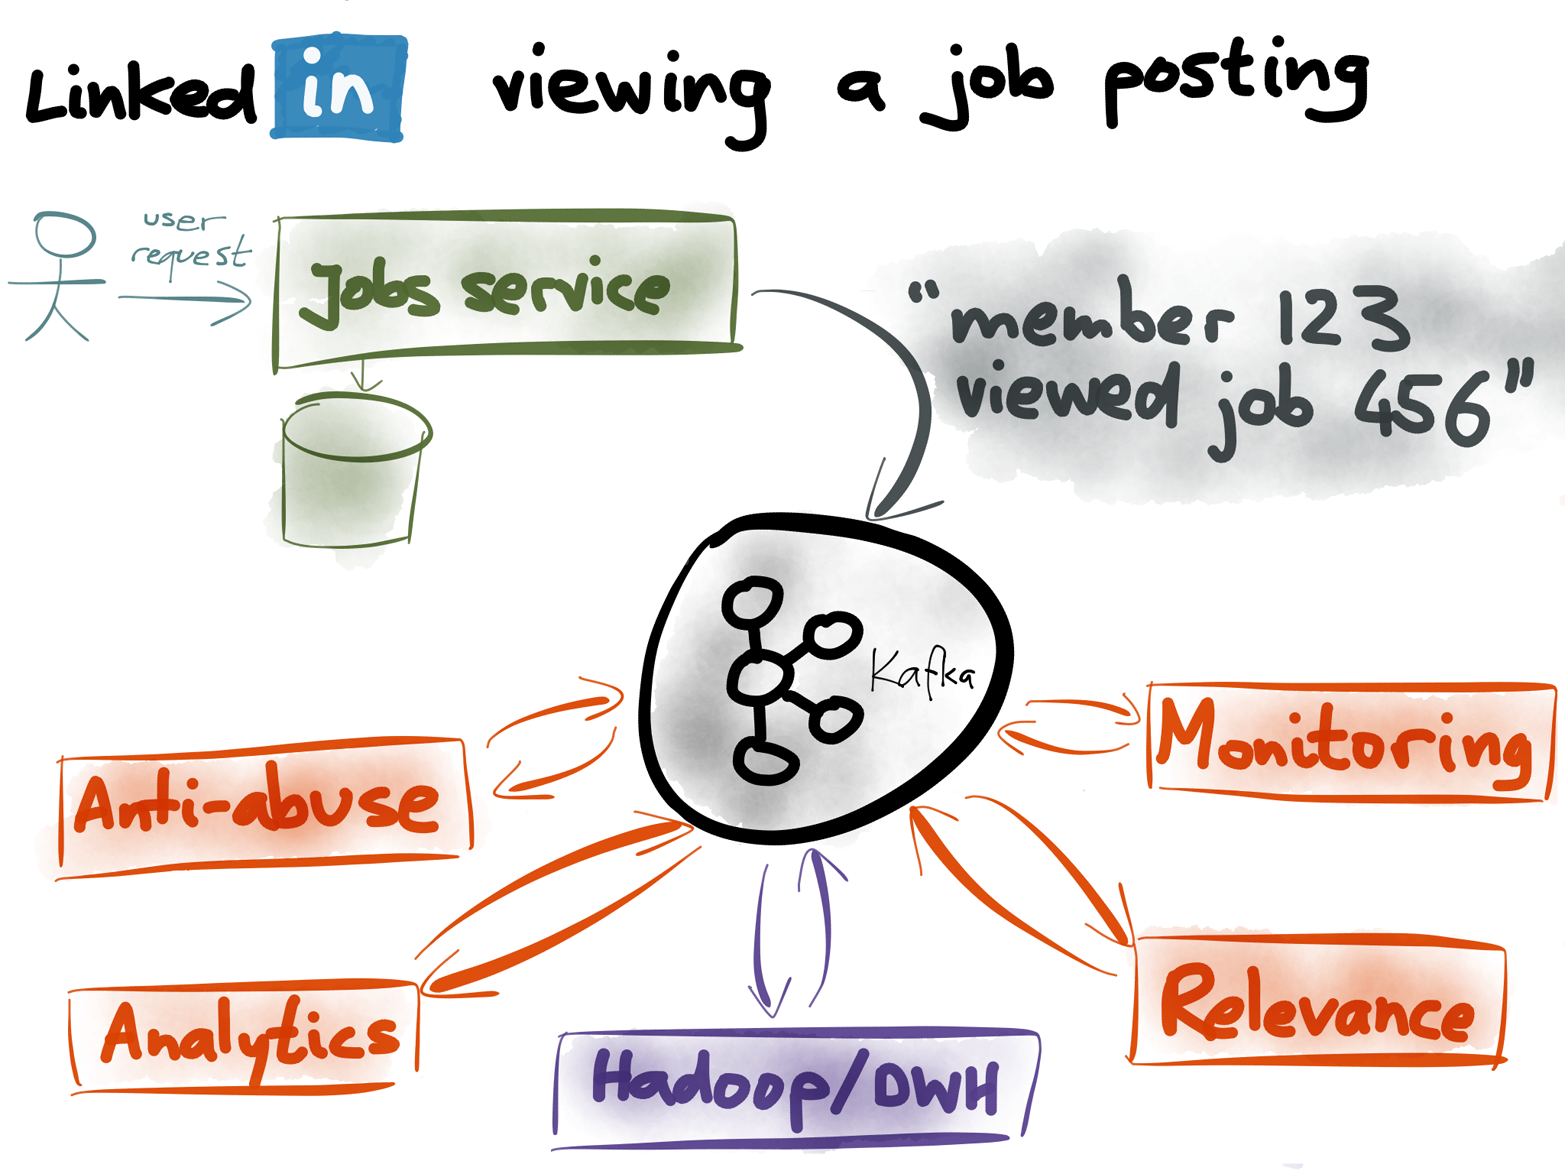 What happens when someone views a job posting on LinkedIn?